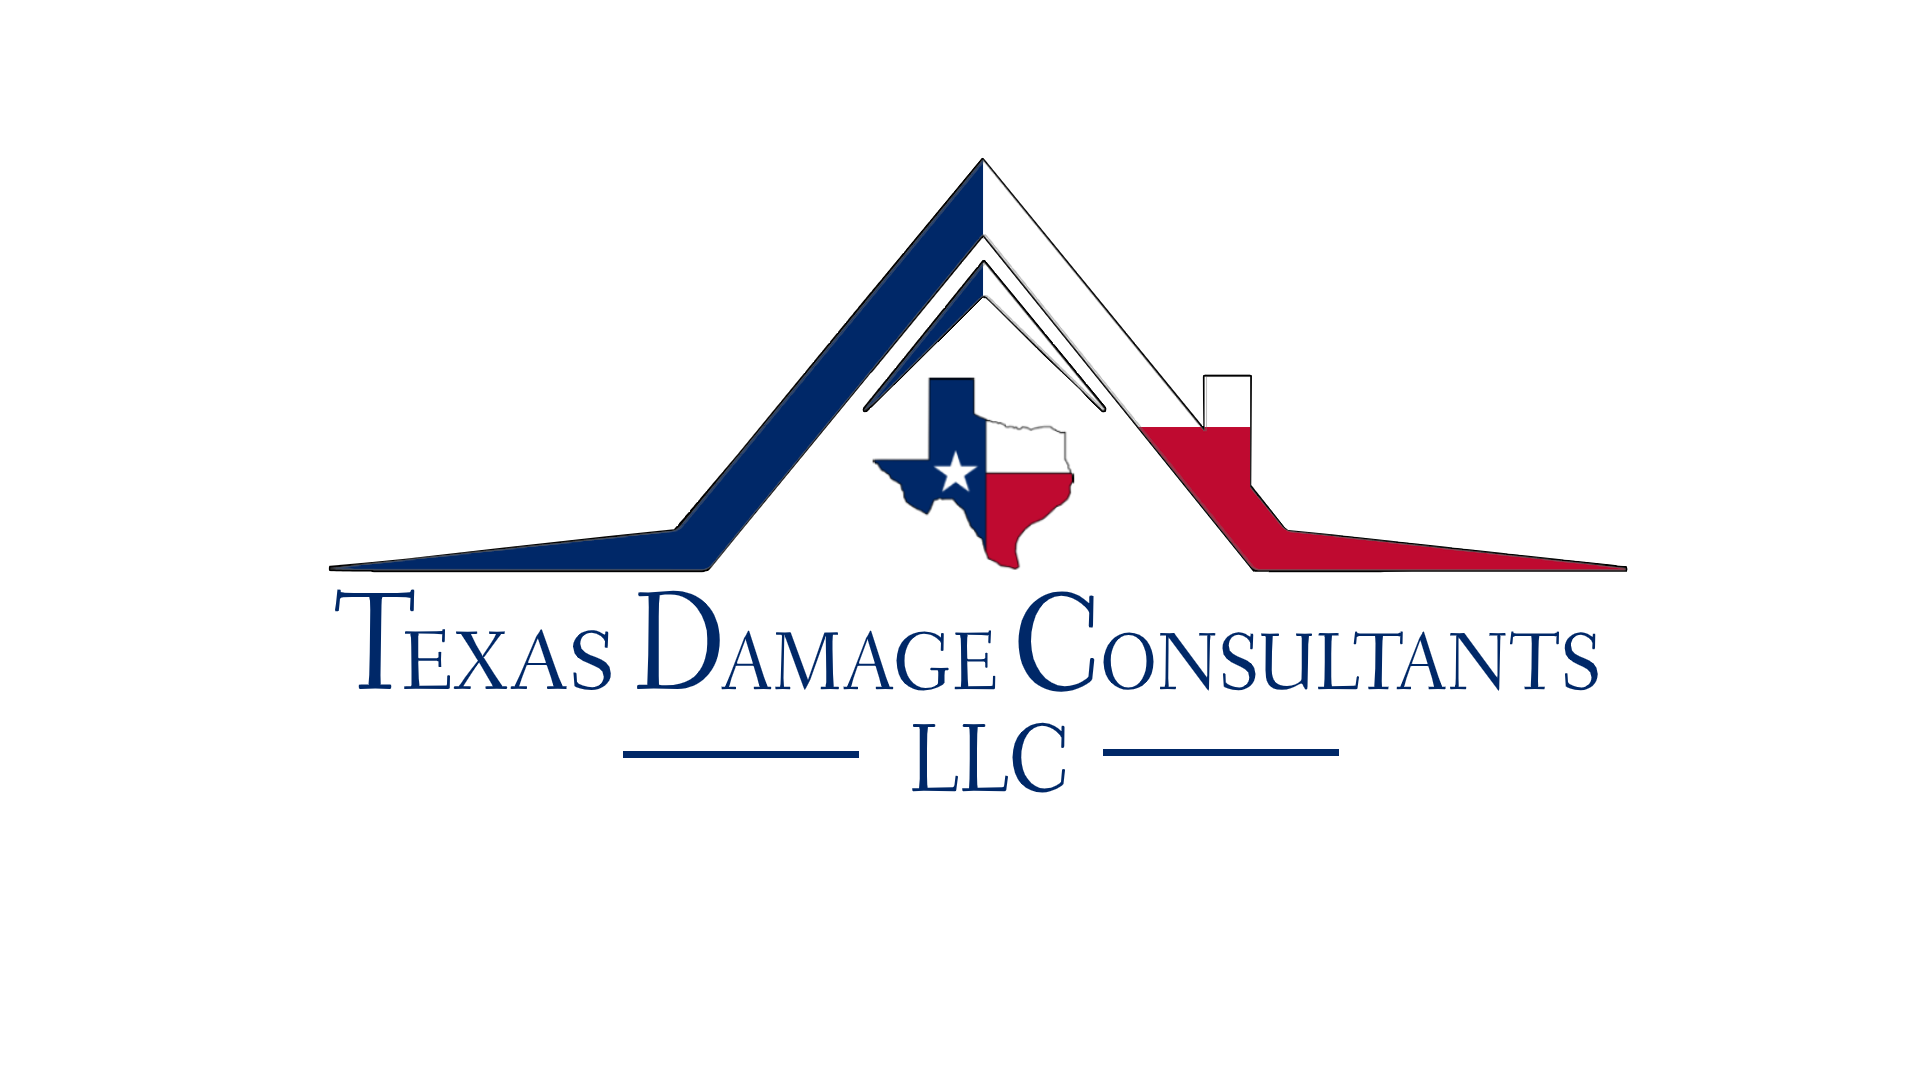 Texas Damage Consultants, LLC, is one of the Leading Roofing Companies in Edinburg, Texas